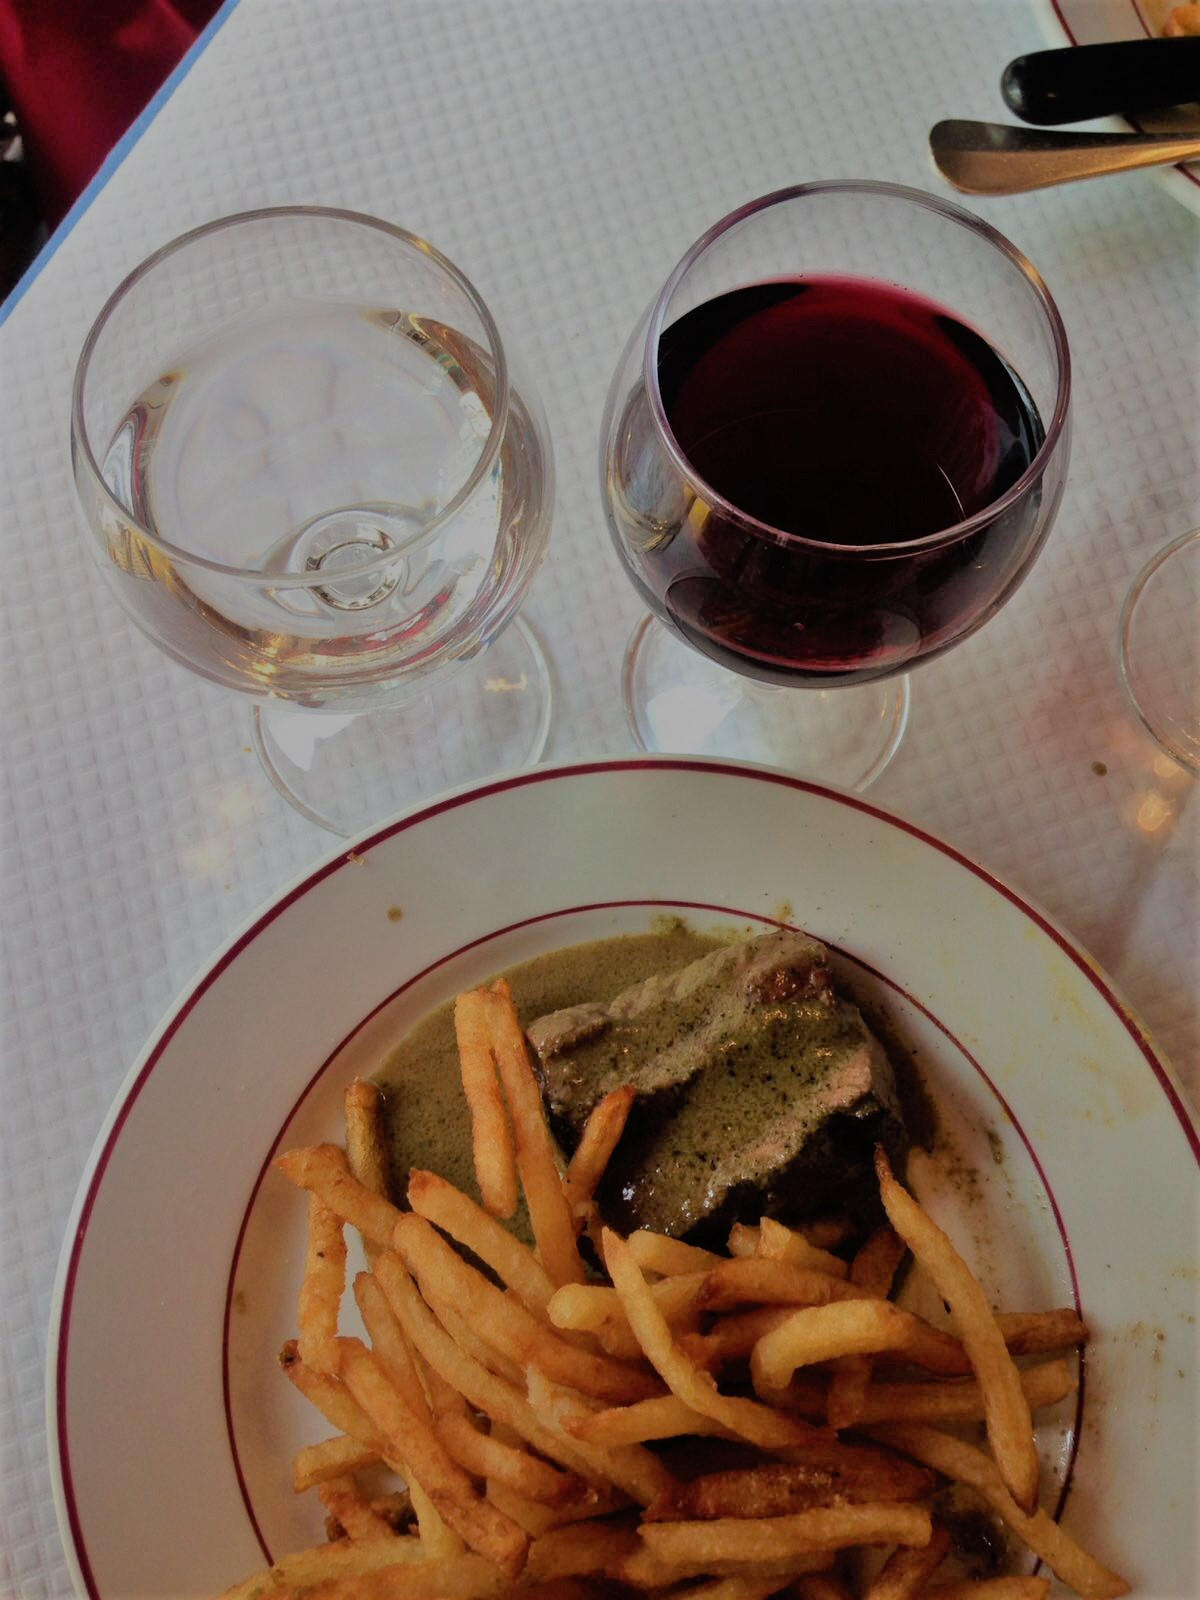 Paris: Le relais de l'entrecote - missing out would be a misteak